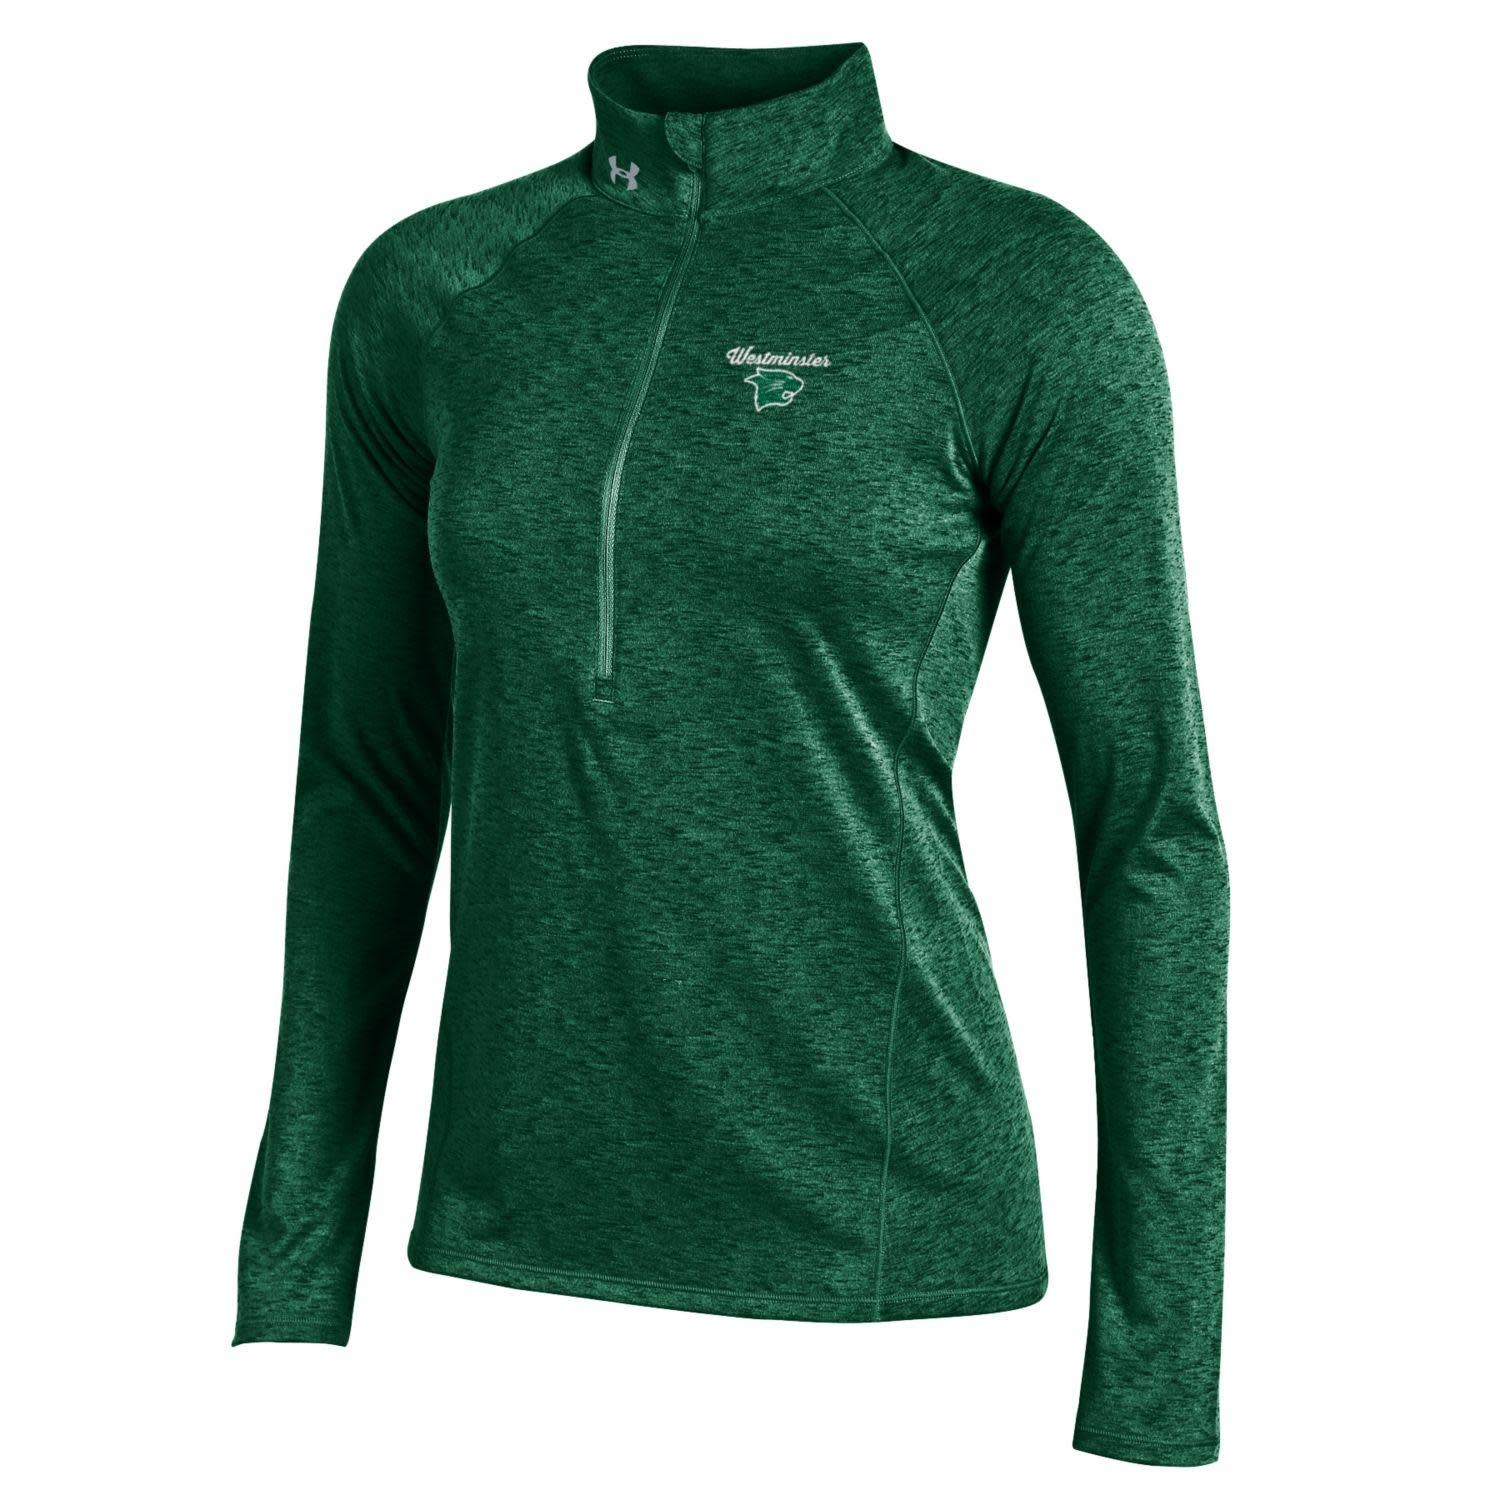 Under Armour Pullover: UA Women's Tech - Forest Green w/Westminster over Logo